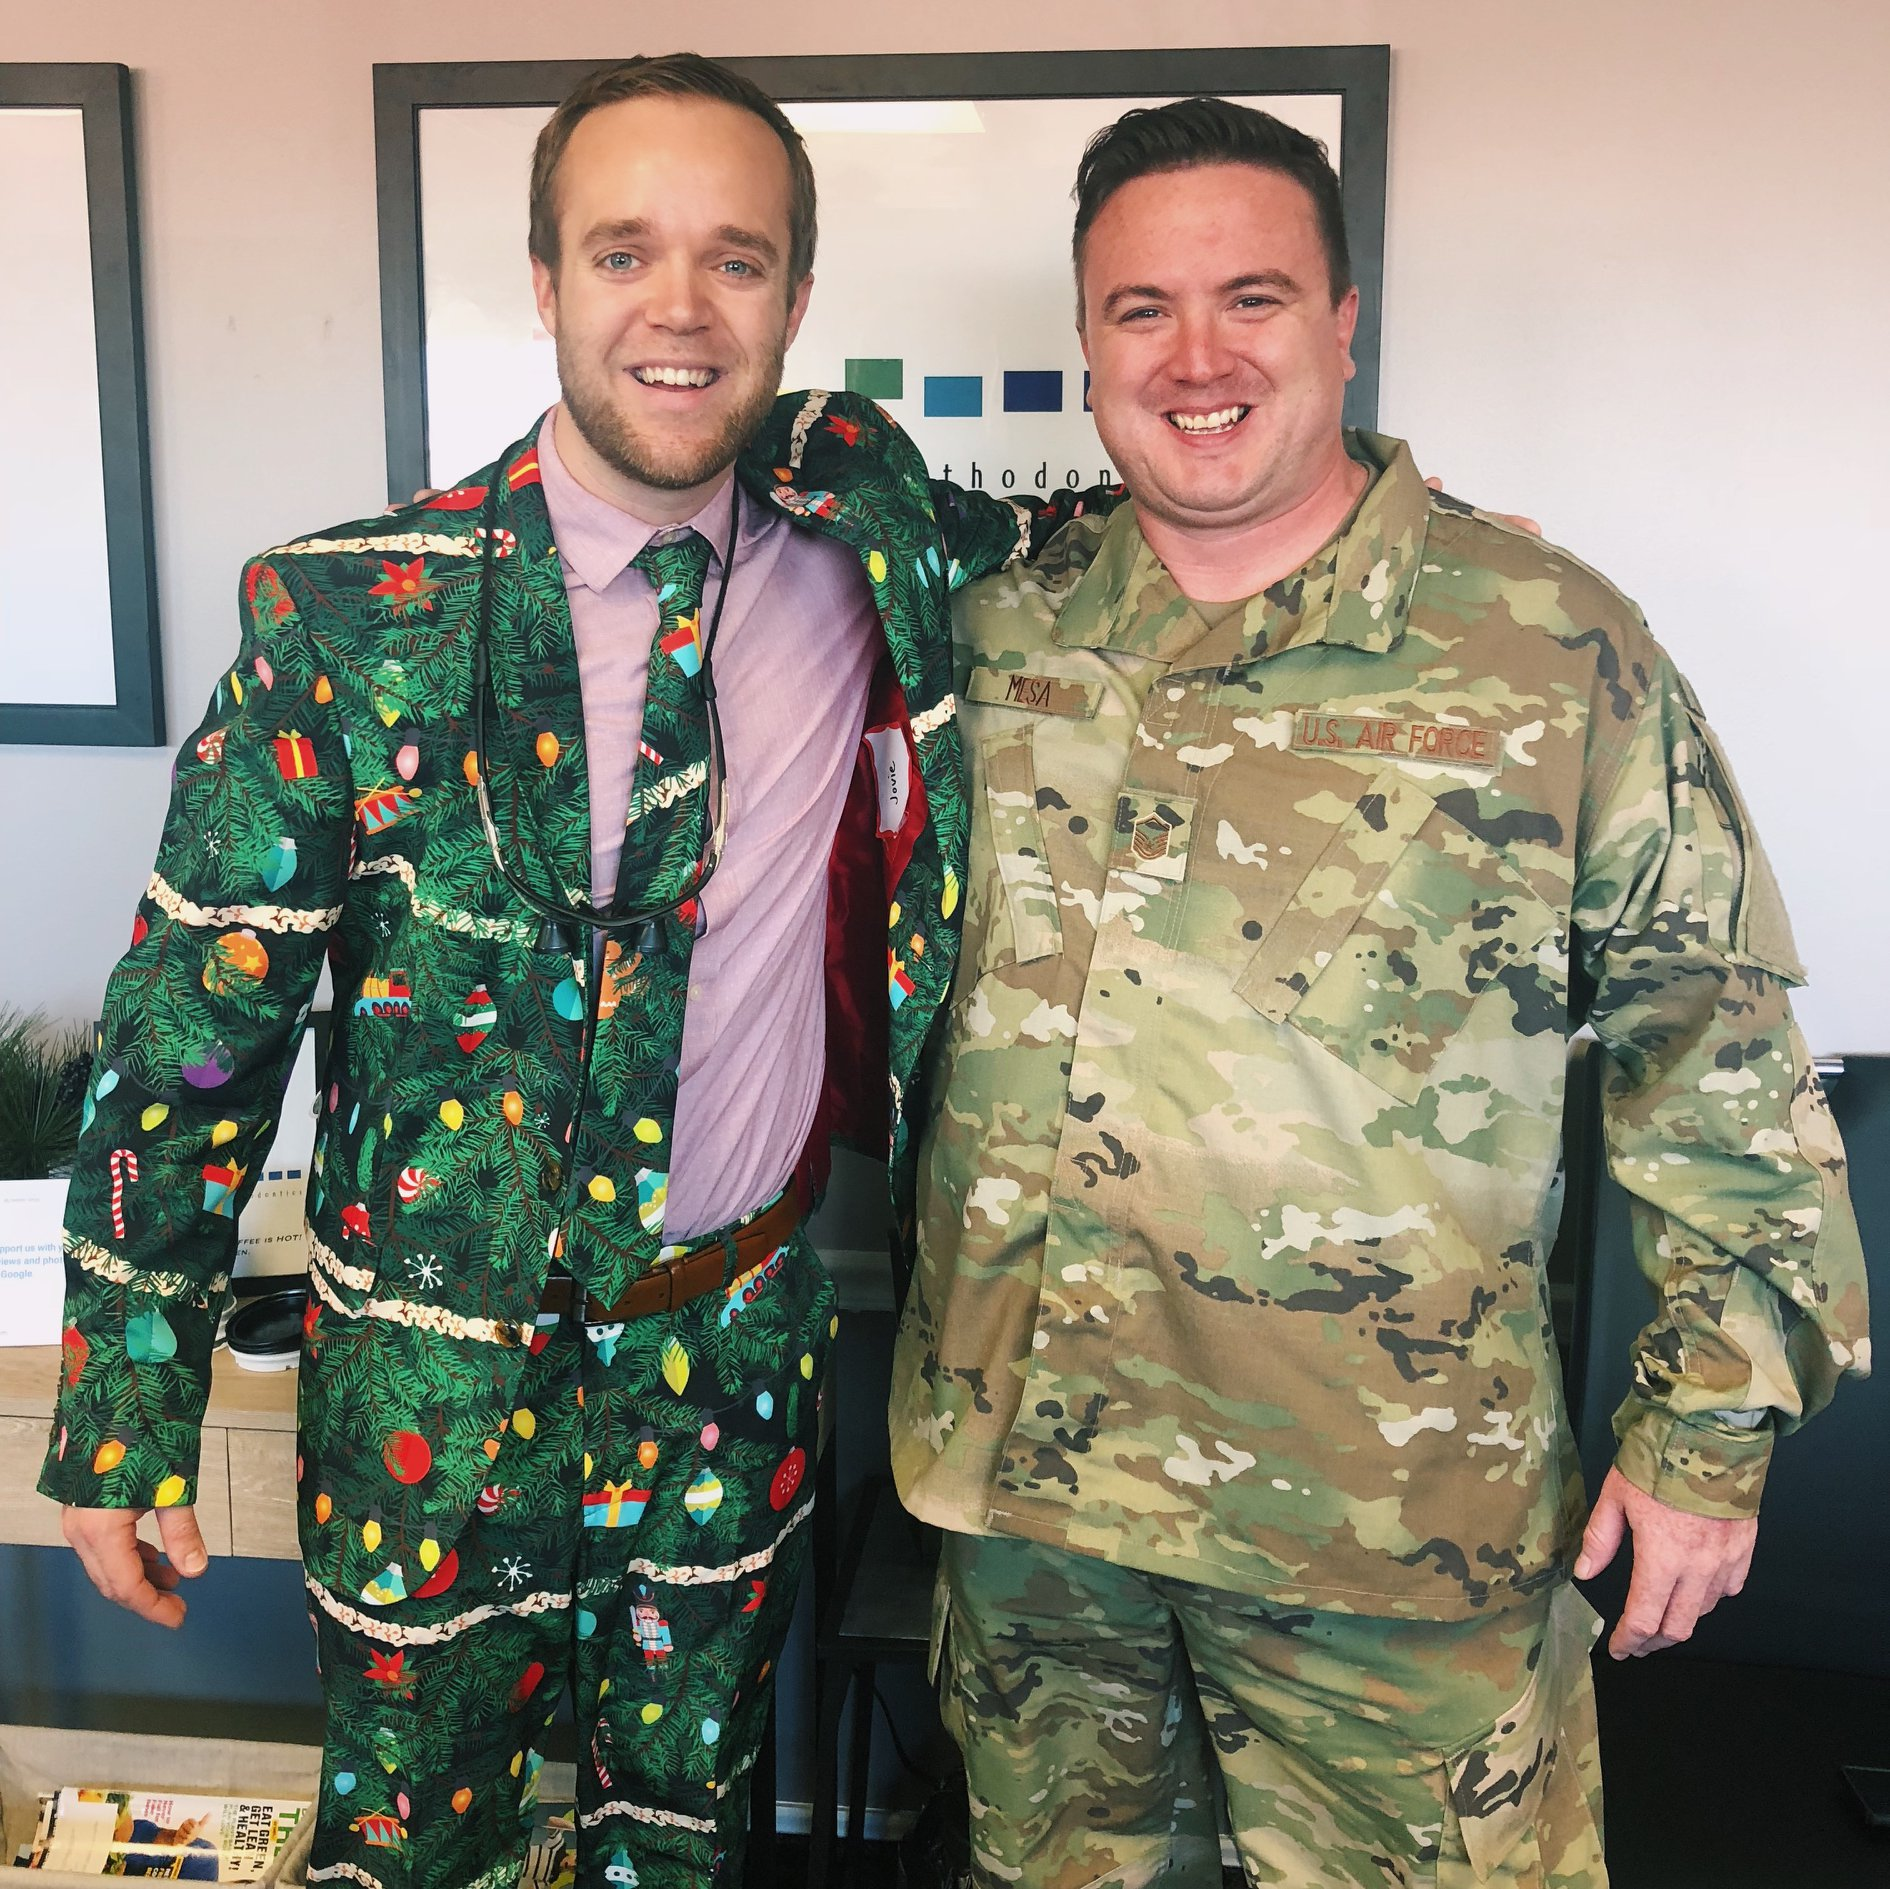 """Christmas Camo"" vs. the real thing!"